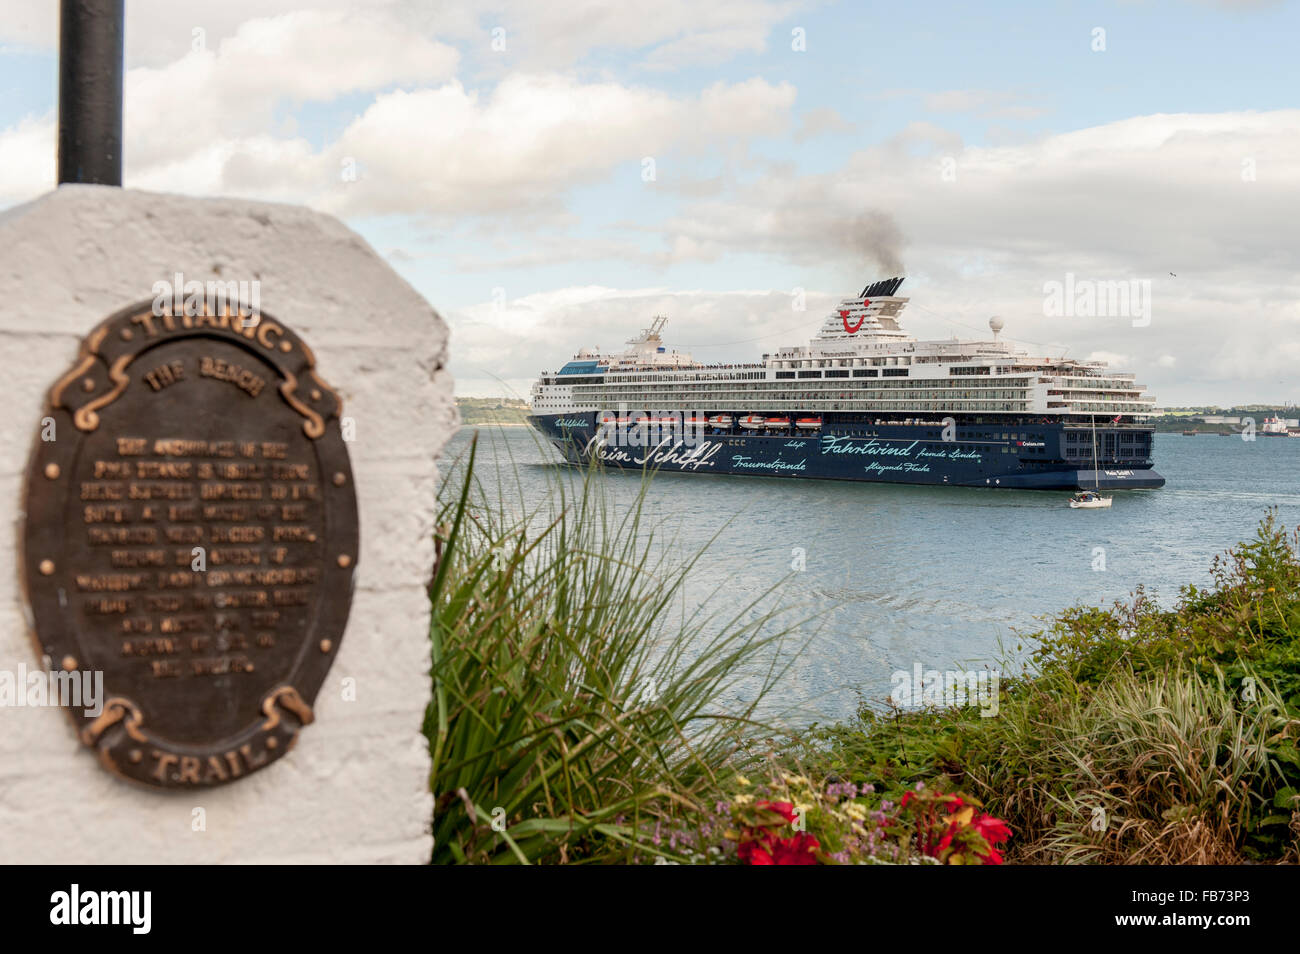 Luxury cruise liner Mein Schiff passes a Titanic Trail plaque as she sails from Cobh, Ireland on 27th July, 2015. - Stock Image